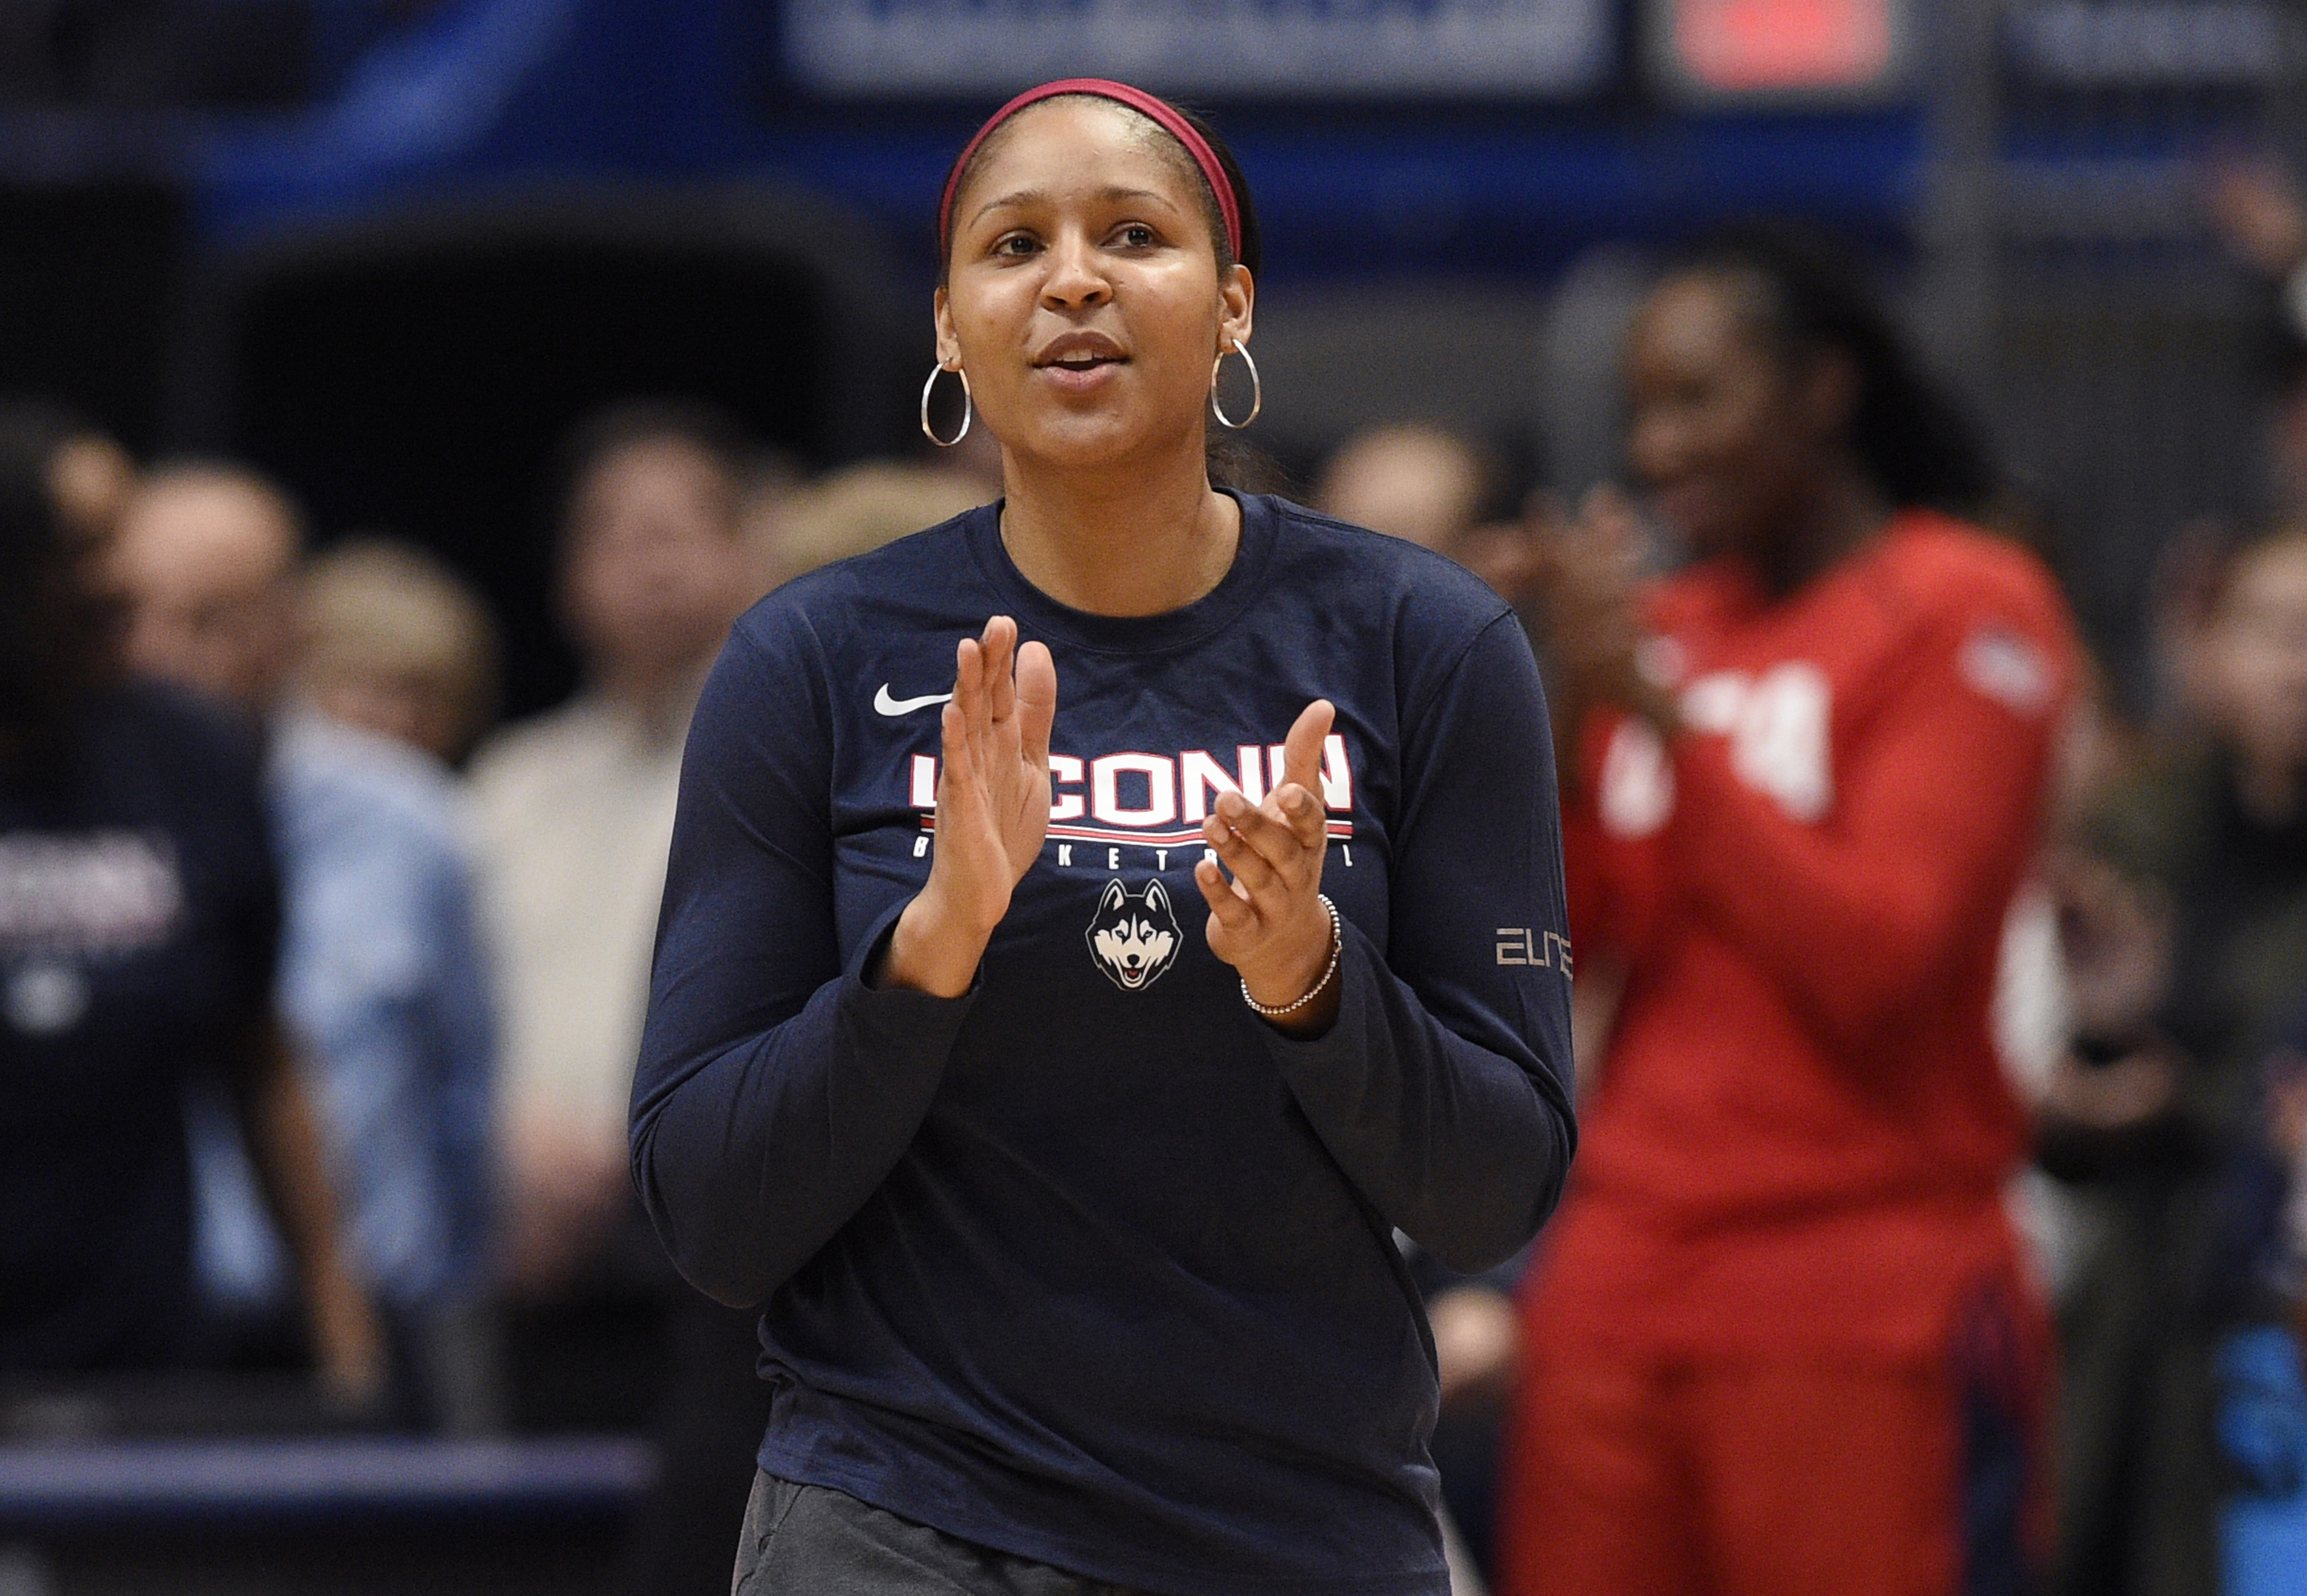 WNBA Legend Maya Moore to Be Given Arthur Ashe Courage Award at 2021 ESPYs